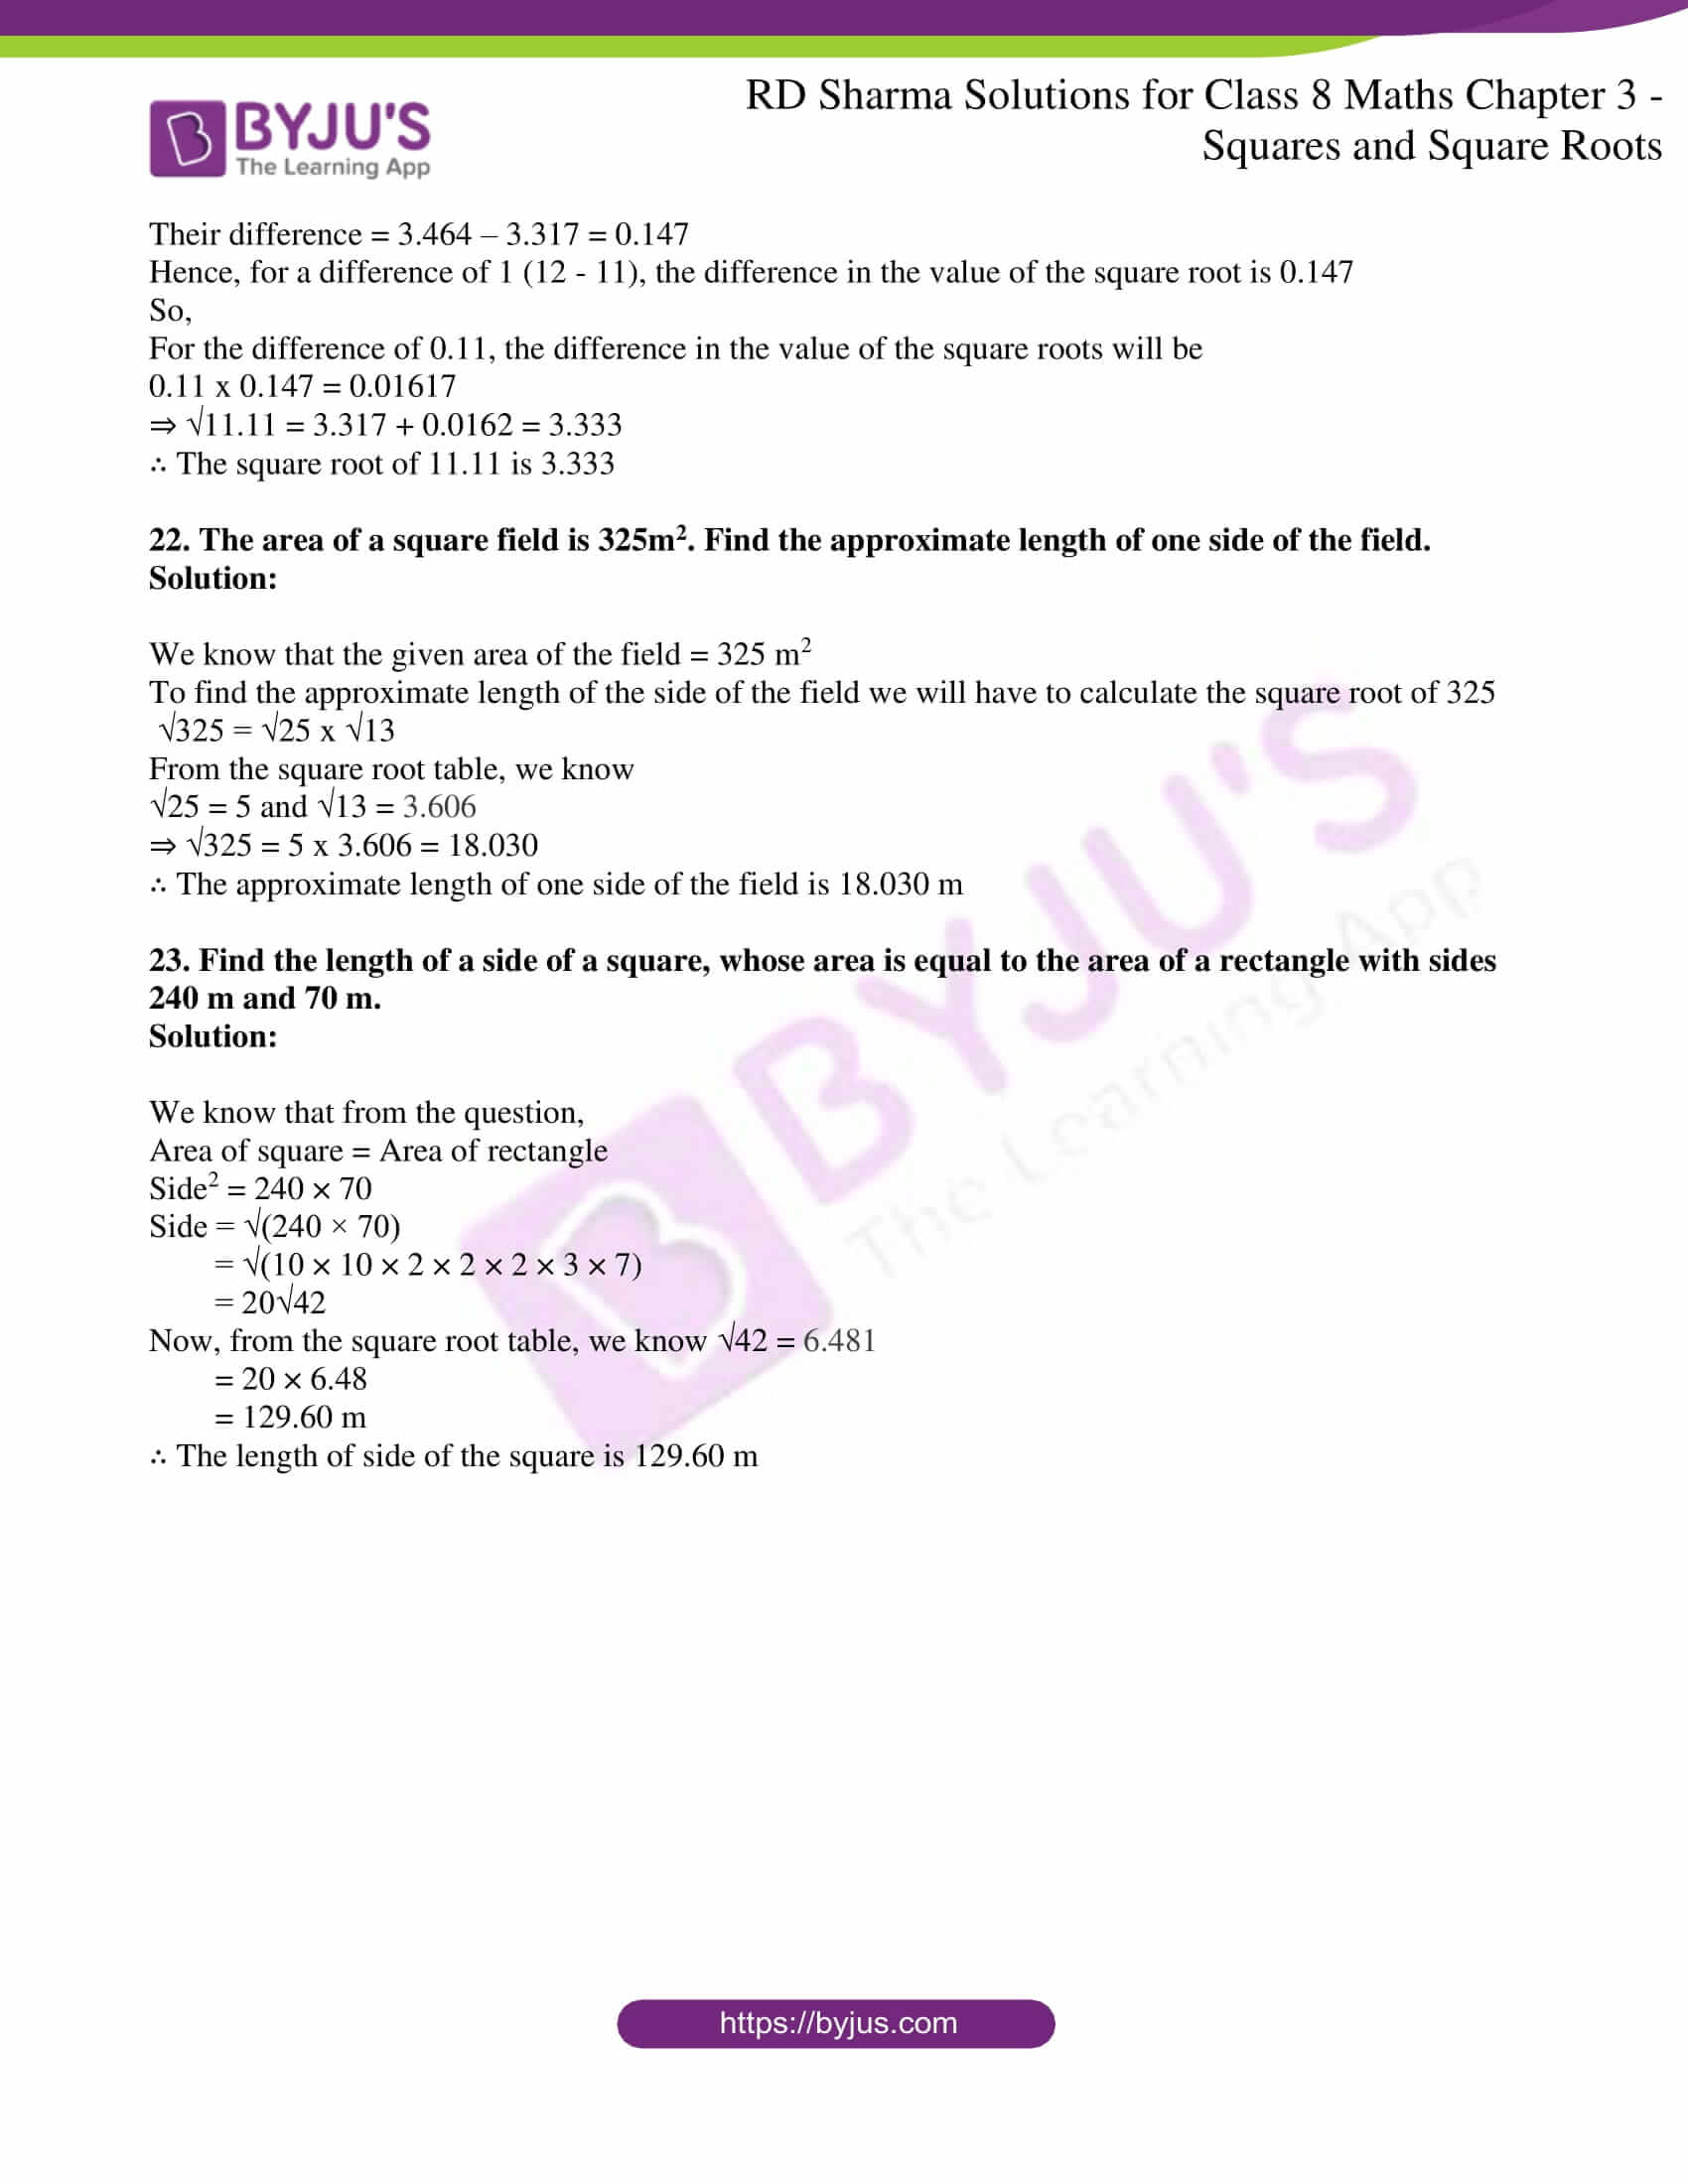 rd sharma solutions jul26 class 8 maths chapter 3 squares and square roots exercise 3 9 9